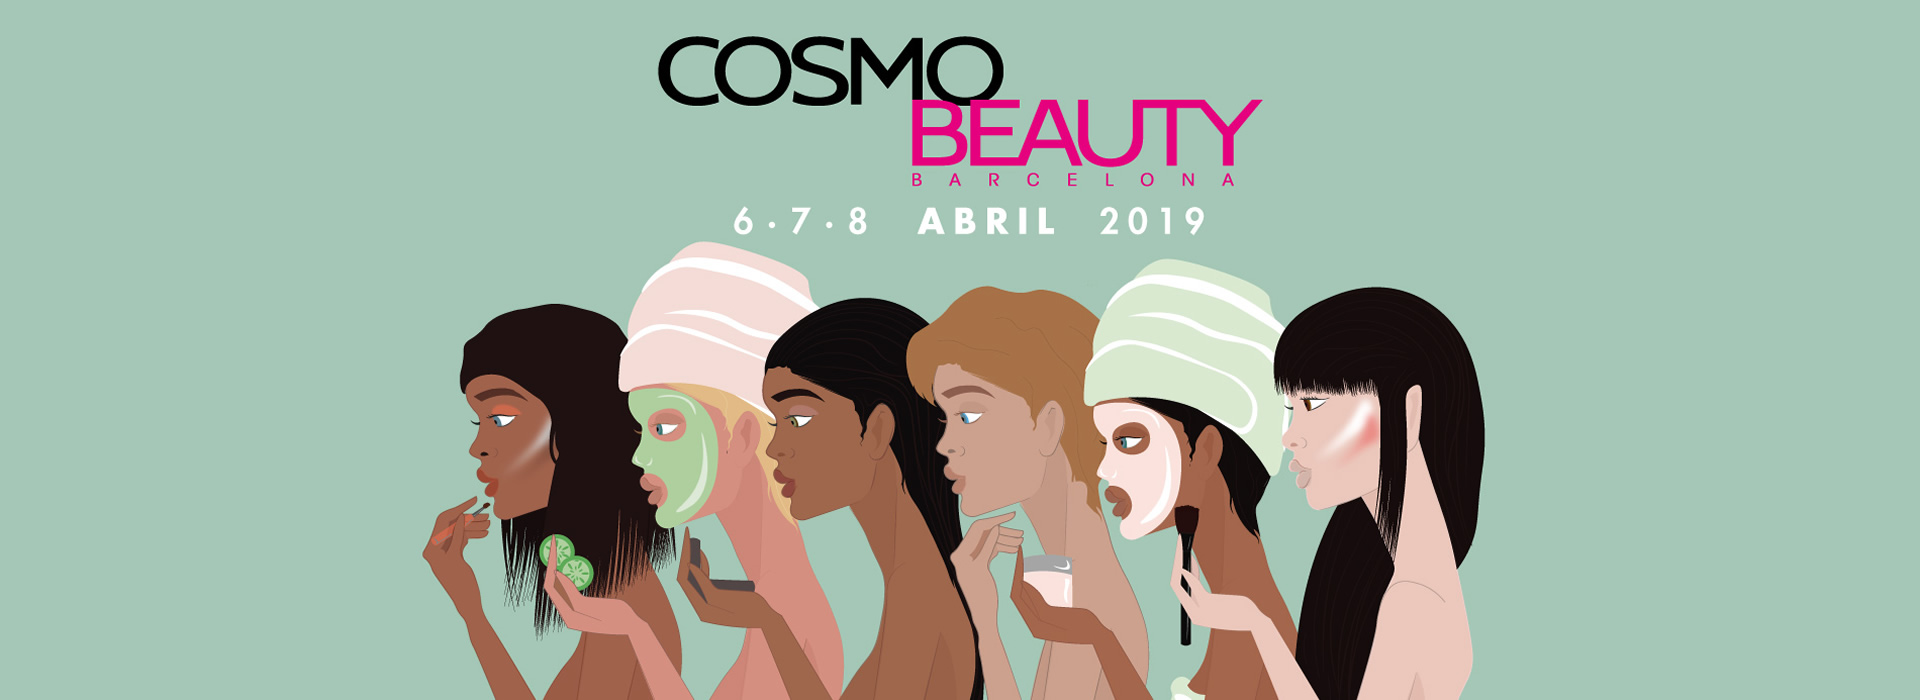 WiPick Media Cosmobeauty Barcelona